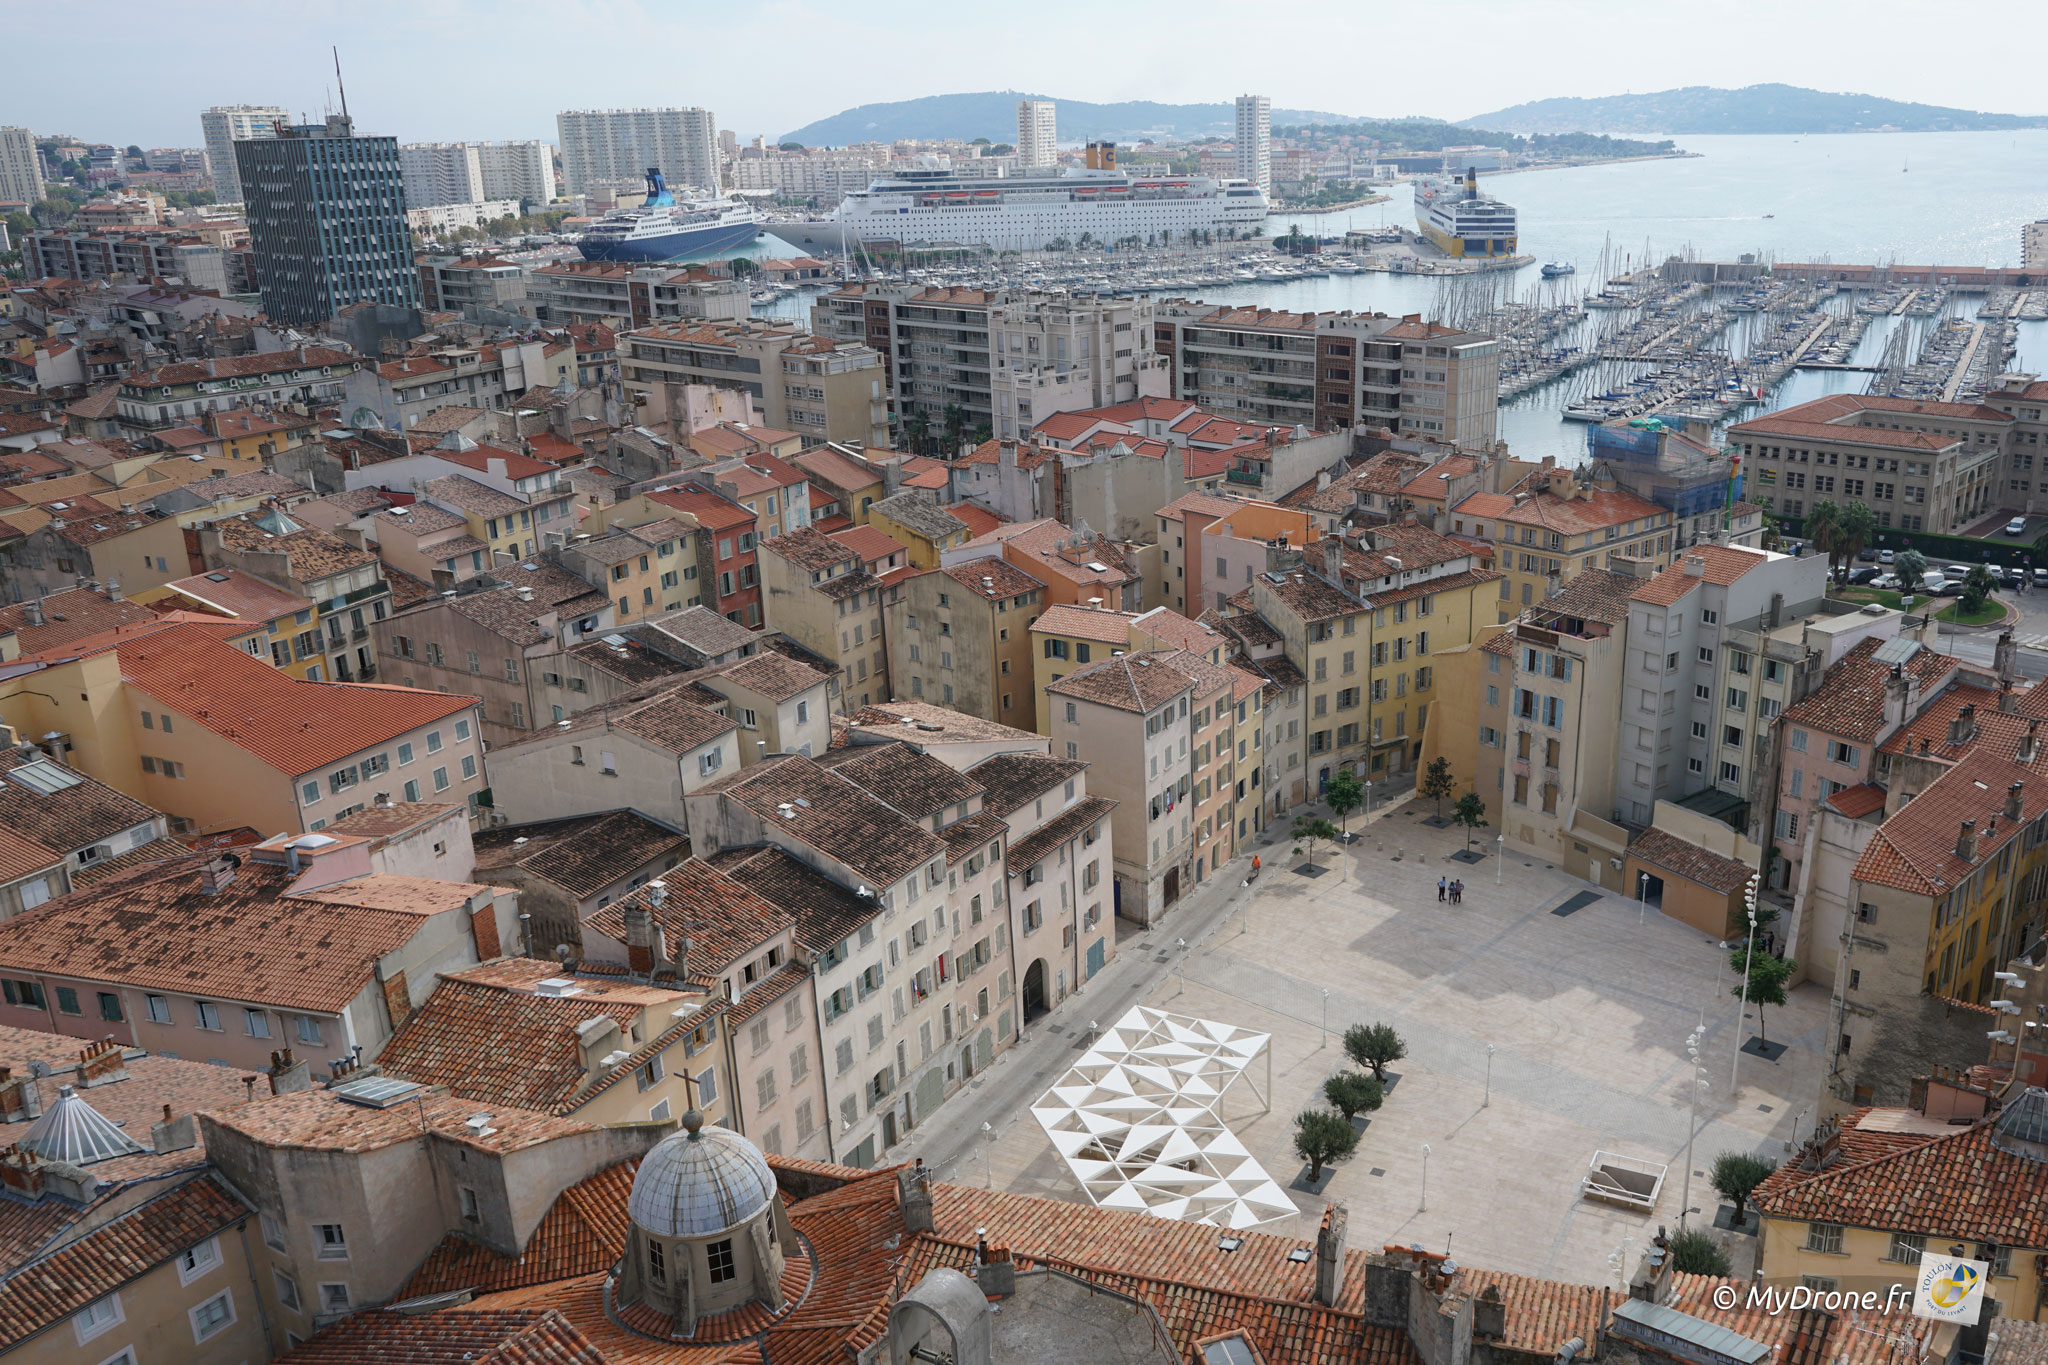 ville-de-toulon - Photo